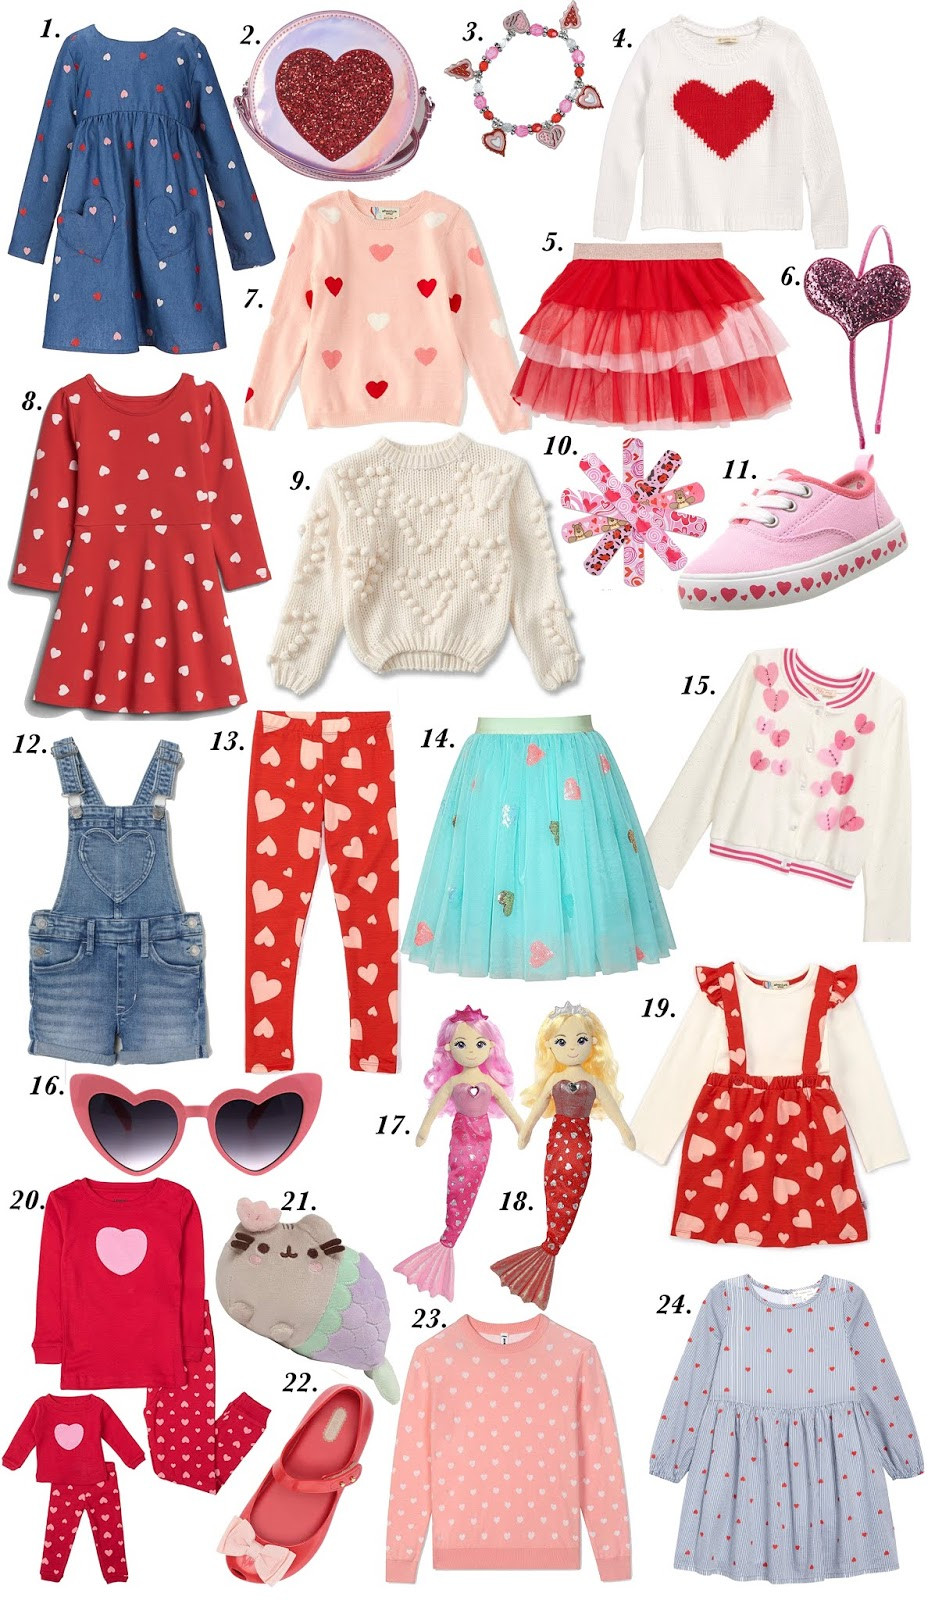 All Things Hearts! Valentine Heart Pieces for Kids - Something Delightful Blog #ValentinesDay #VDay #ValentinesDay2020 #Hearts #ValentineGifts #BeMyValentine #HeartPieces #HeartSweater